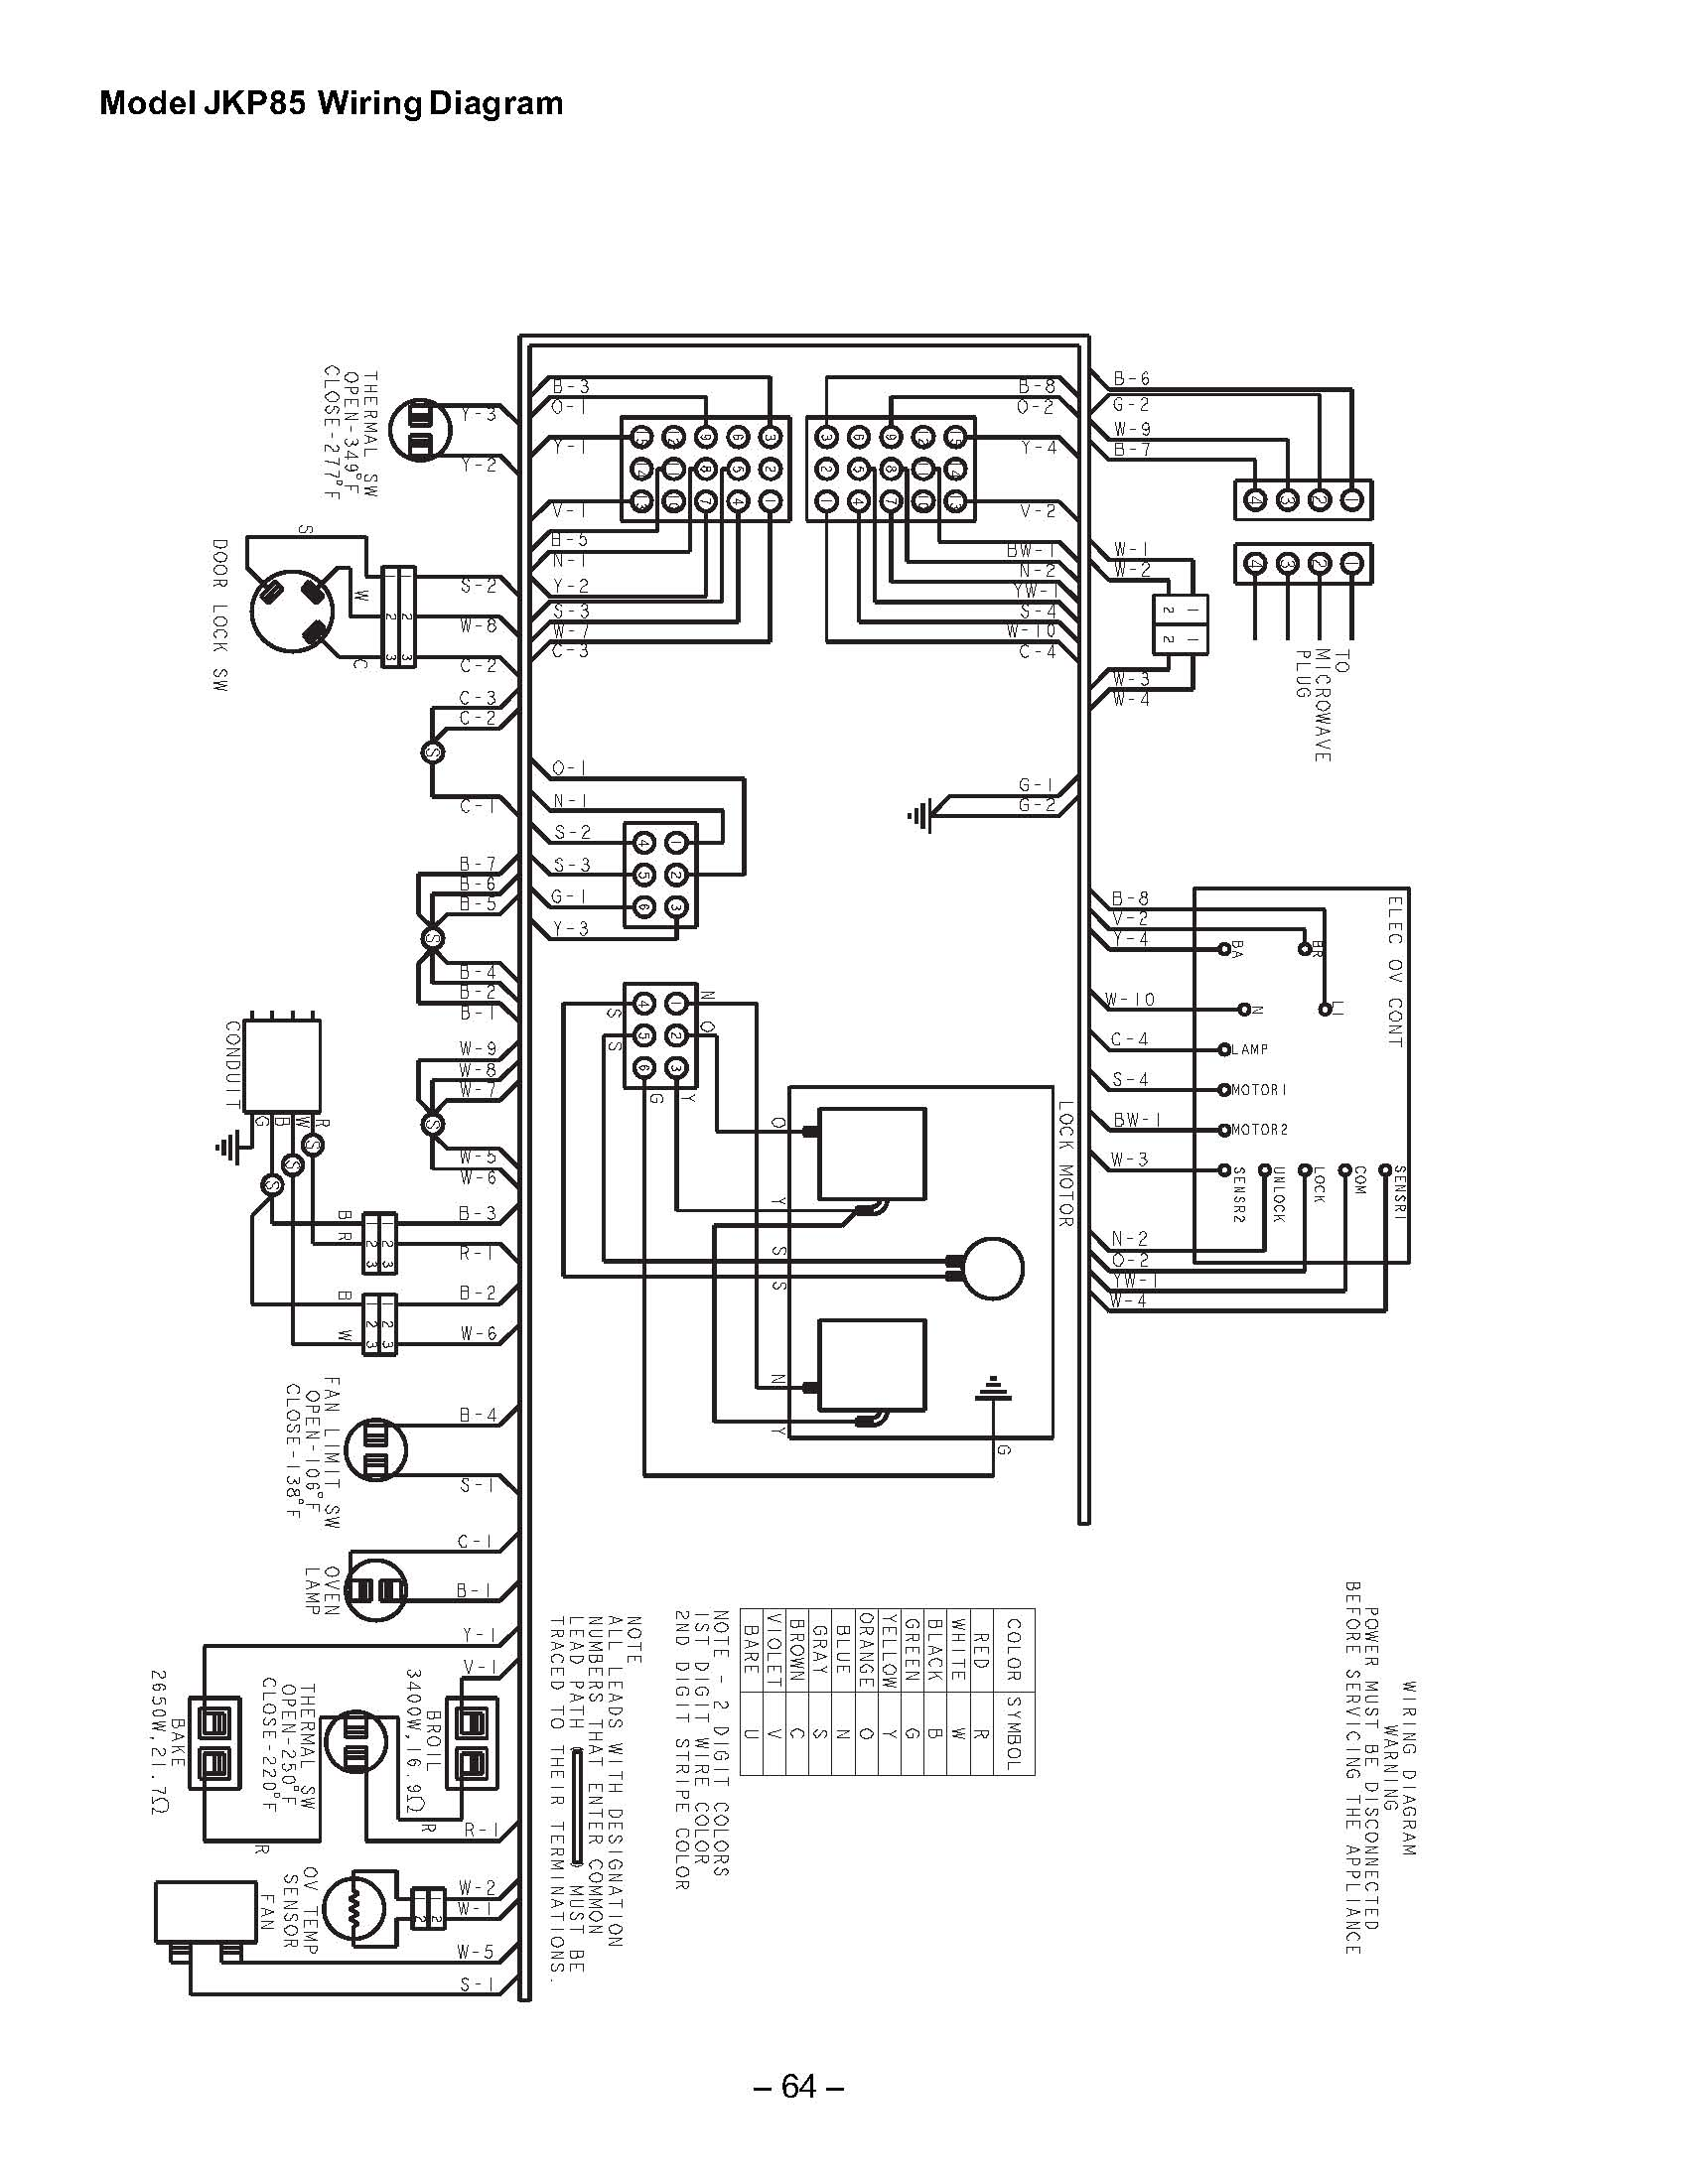 Wiring Diagrams For Samsung Wall Oven Electric Diagram My Problem Is A Completely Dead Ge Jkp85 Combination Kitchenaid